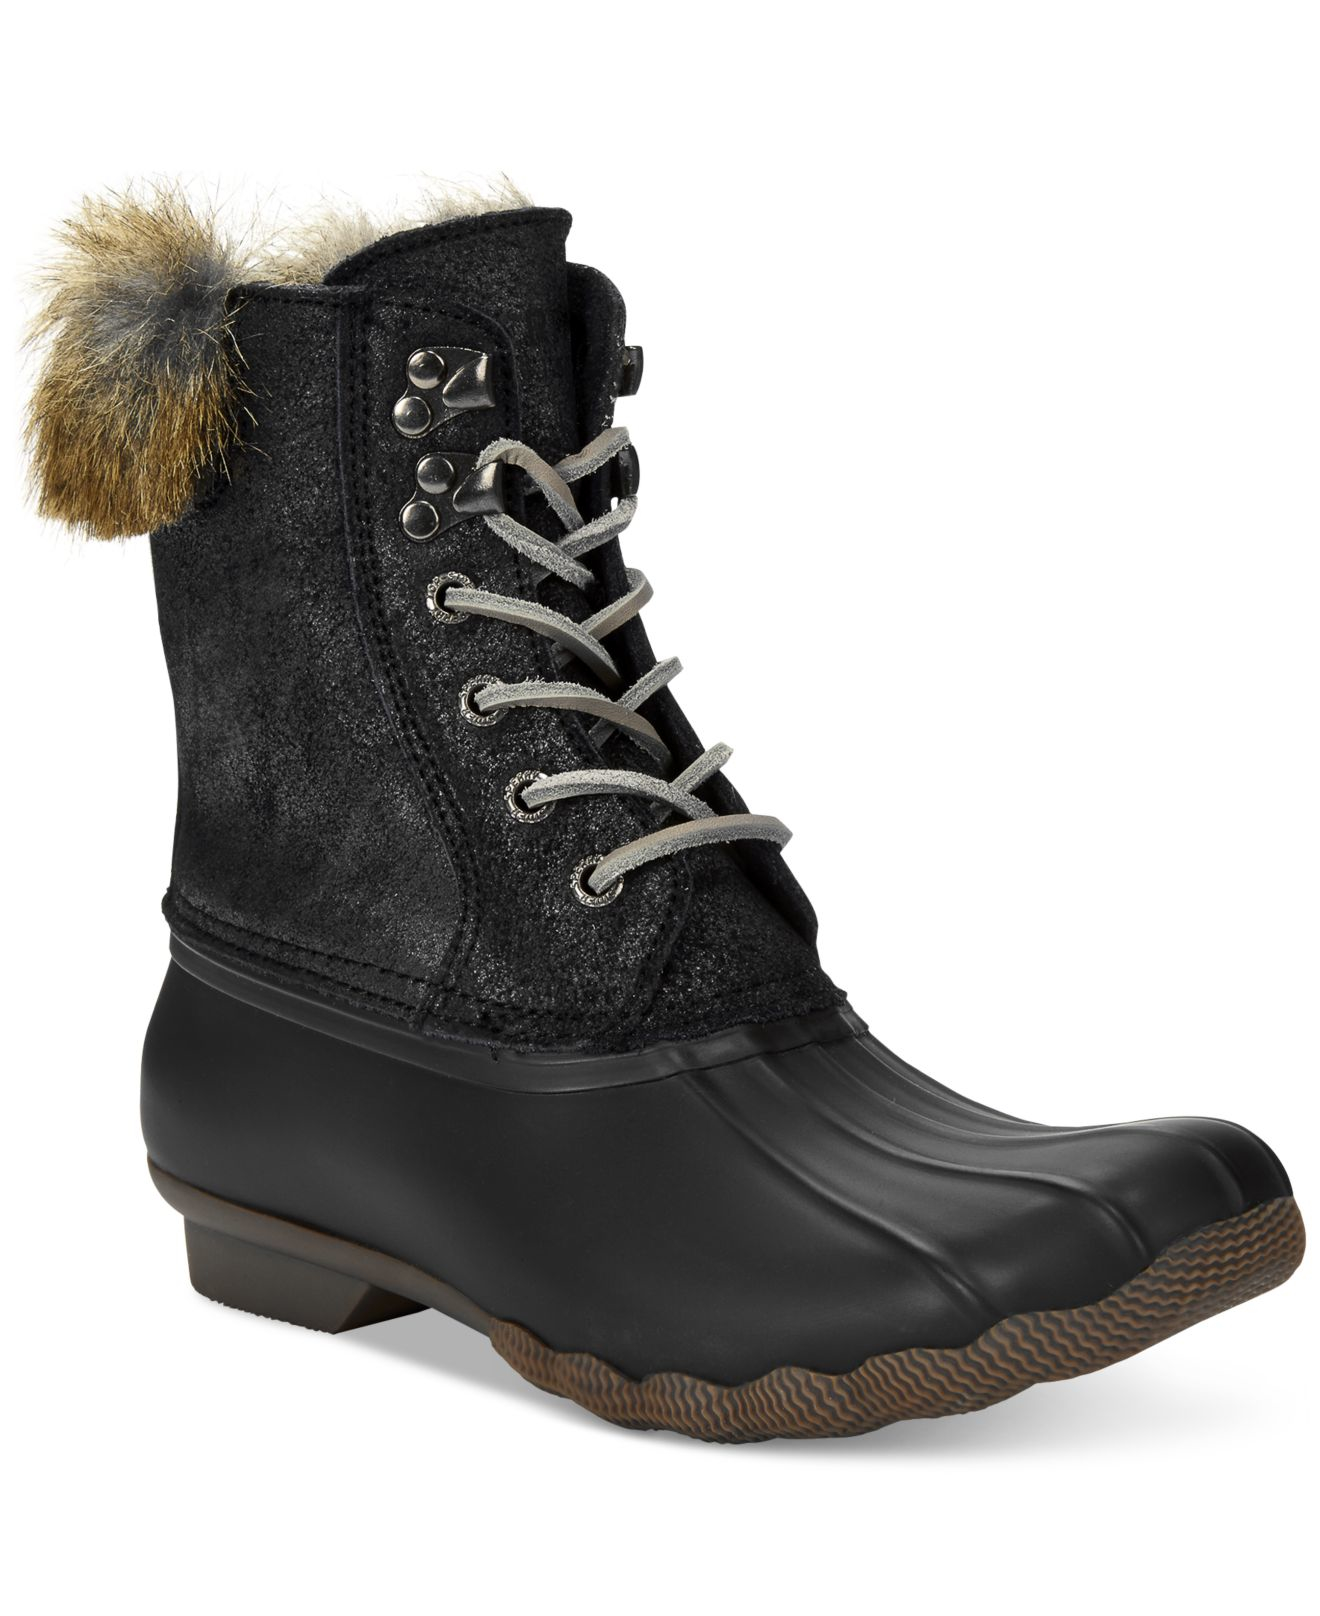 Lyst Sperry Top Sider Women S White Water Duck Boots In